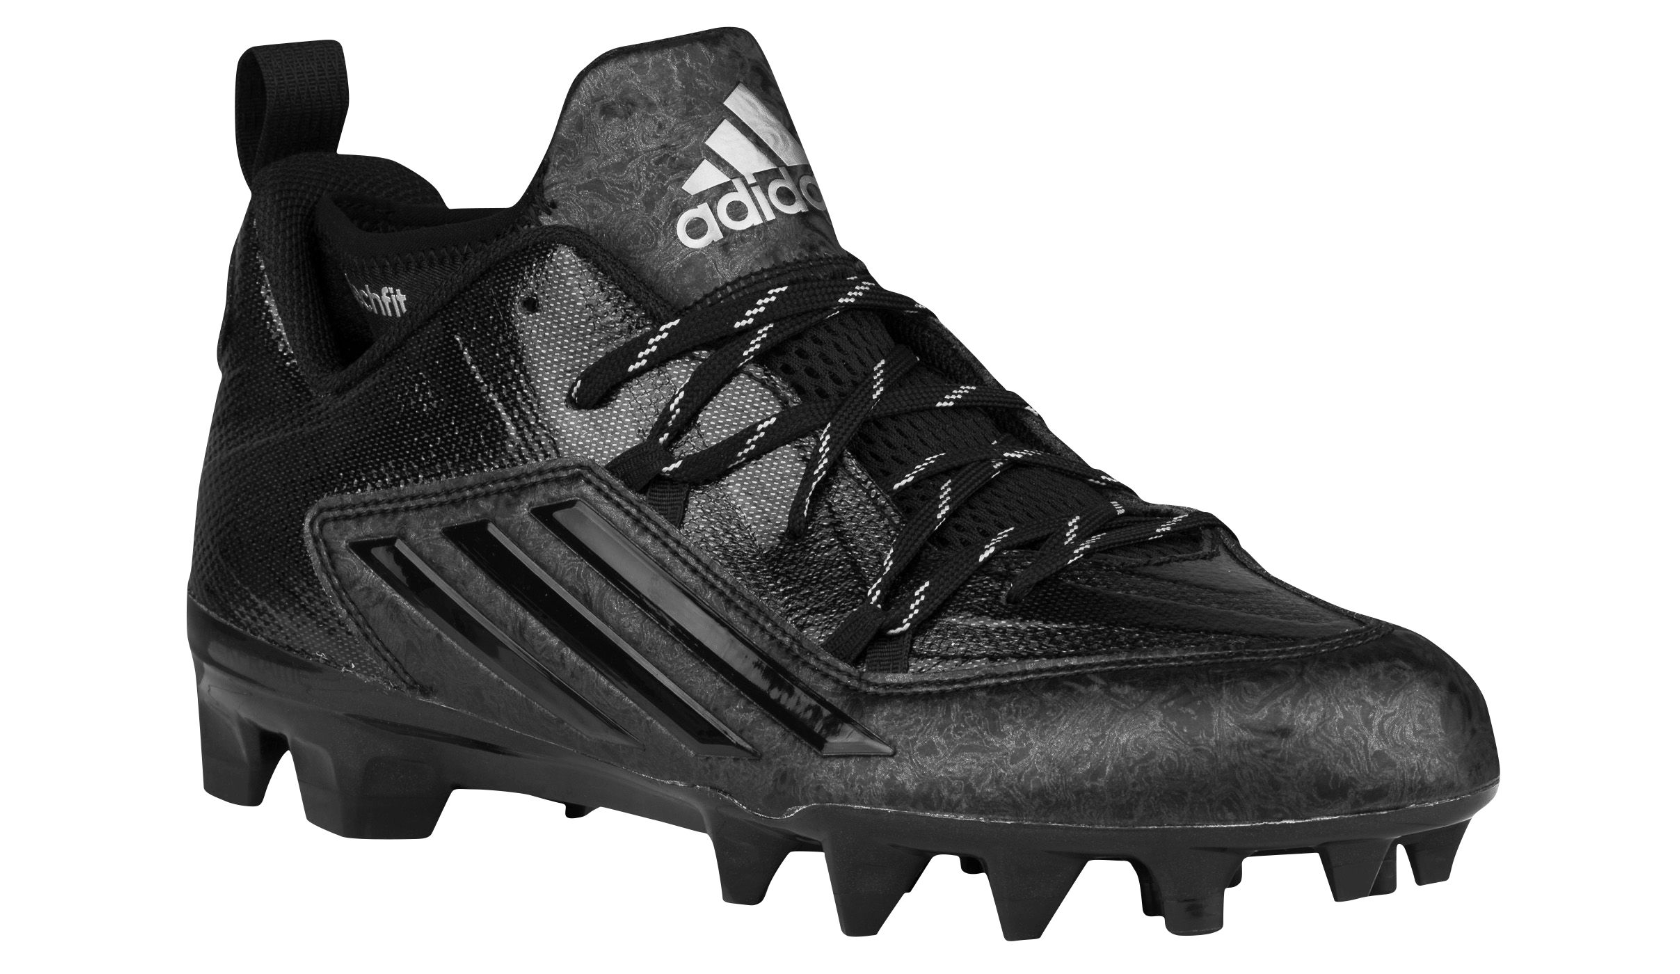 sports shoes 2a1e8 2ceb3 ... adidas Crazyquick 2.0 Football Cleats - League Outfitters ...